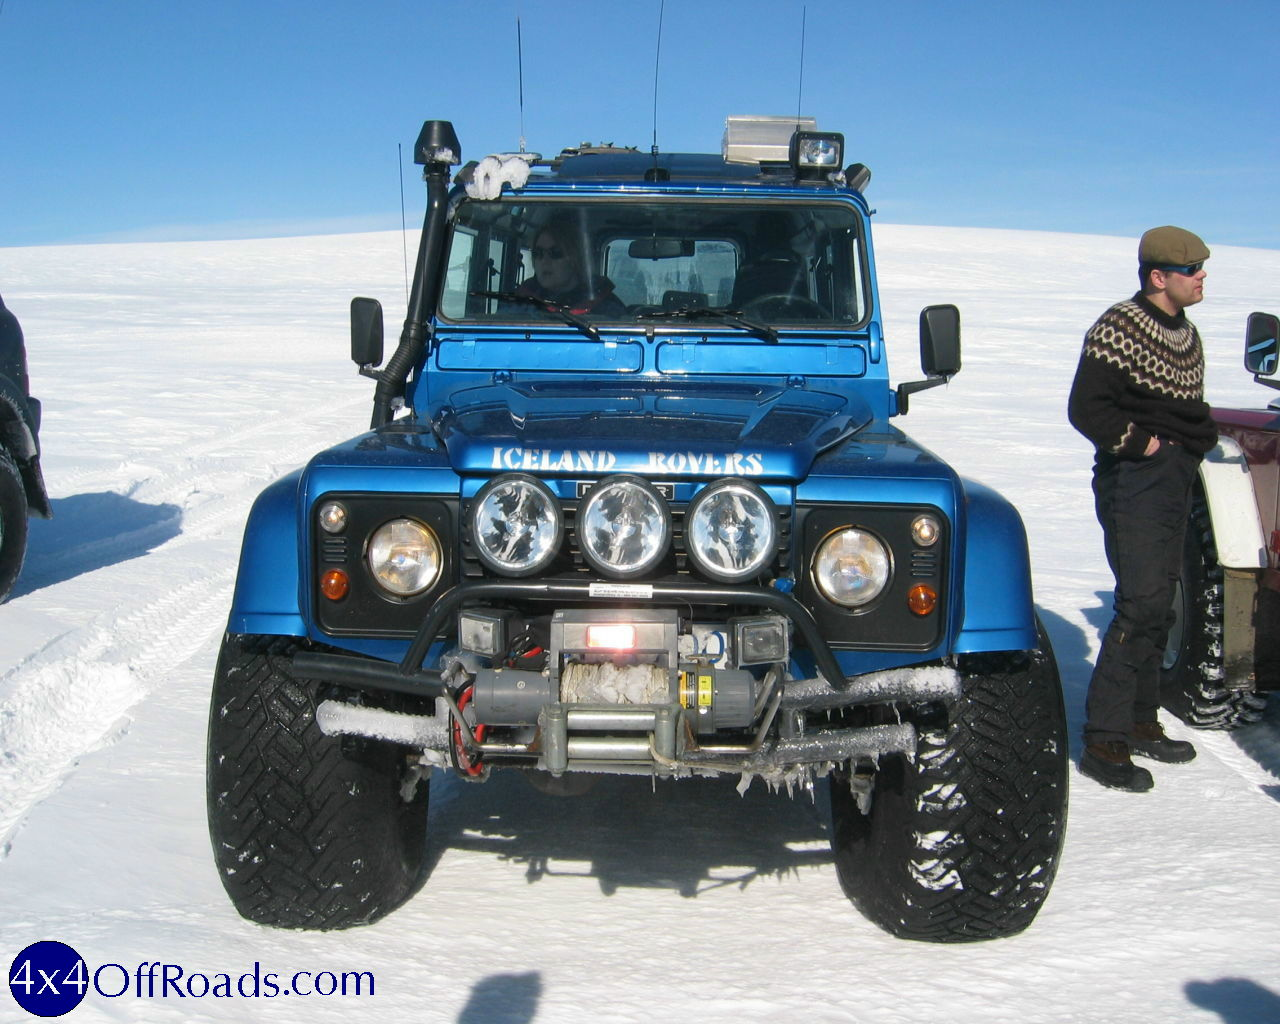 off roading rc trucks with 4x4 Off Road on 4x4 Answerman Your Truck And Suv Questions Answered 53718 further Stock Photo Monster Truck Remote Control Near Image11265590 moreover Watch besides P755492 further Watch.